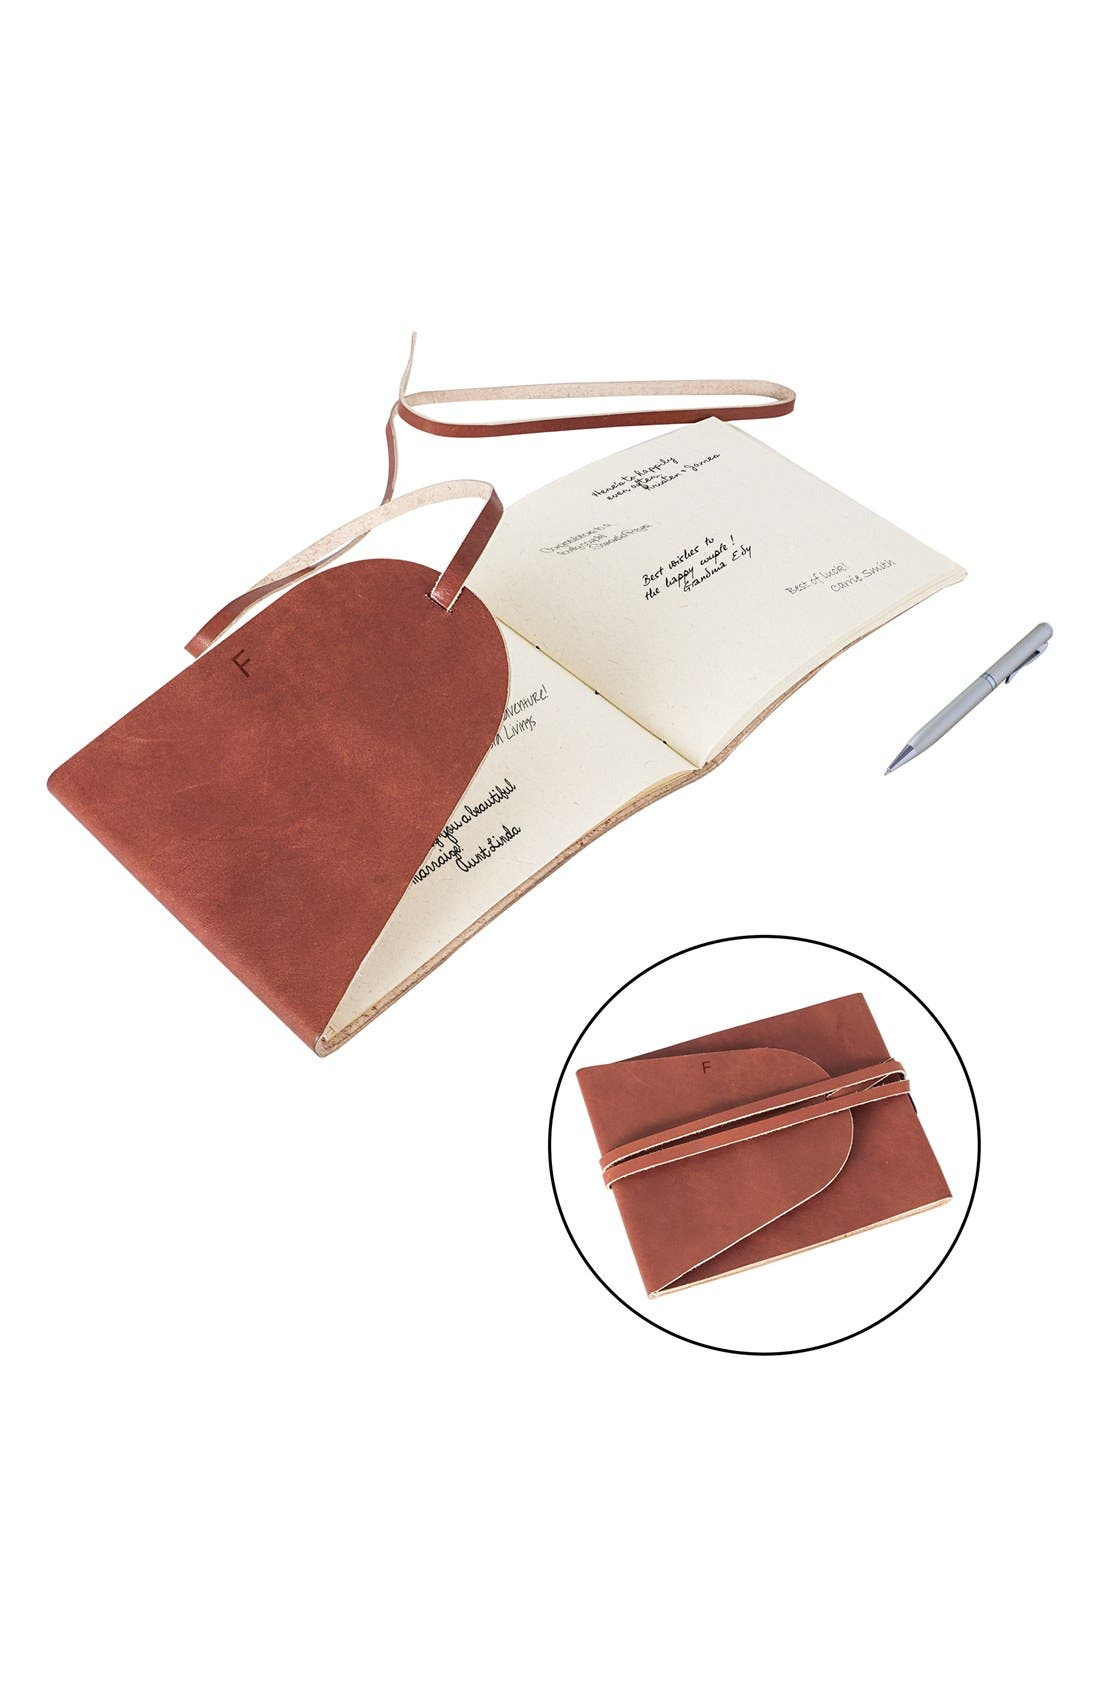 Monogram Leather Guest Book,                             Alternate thumbnail 3, color,                             223